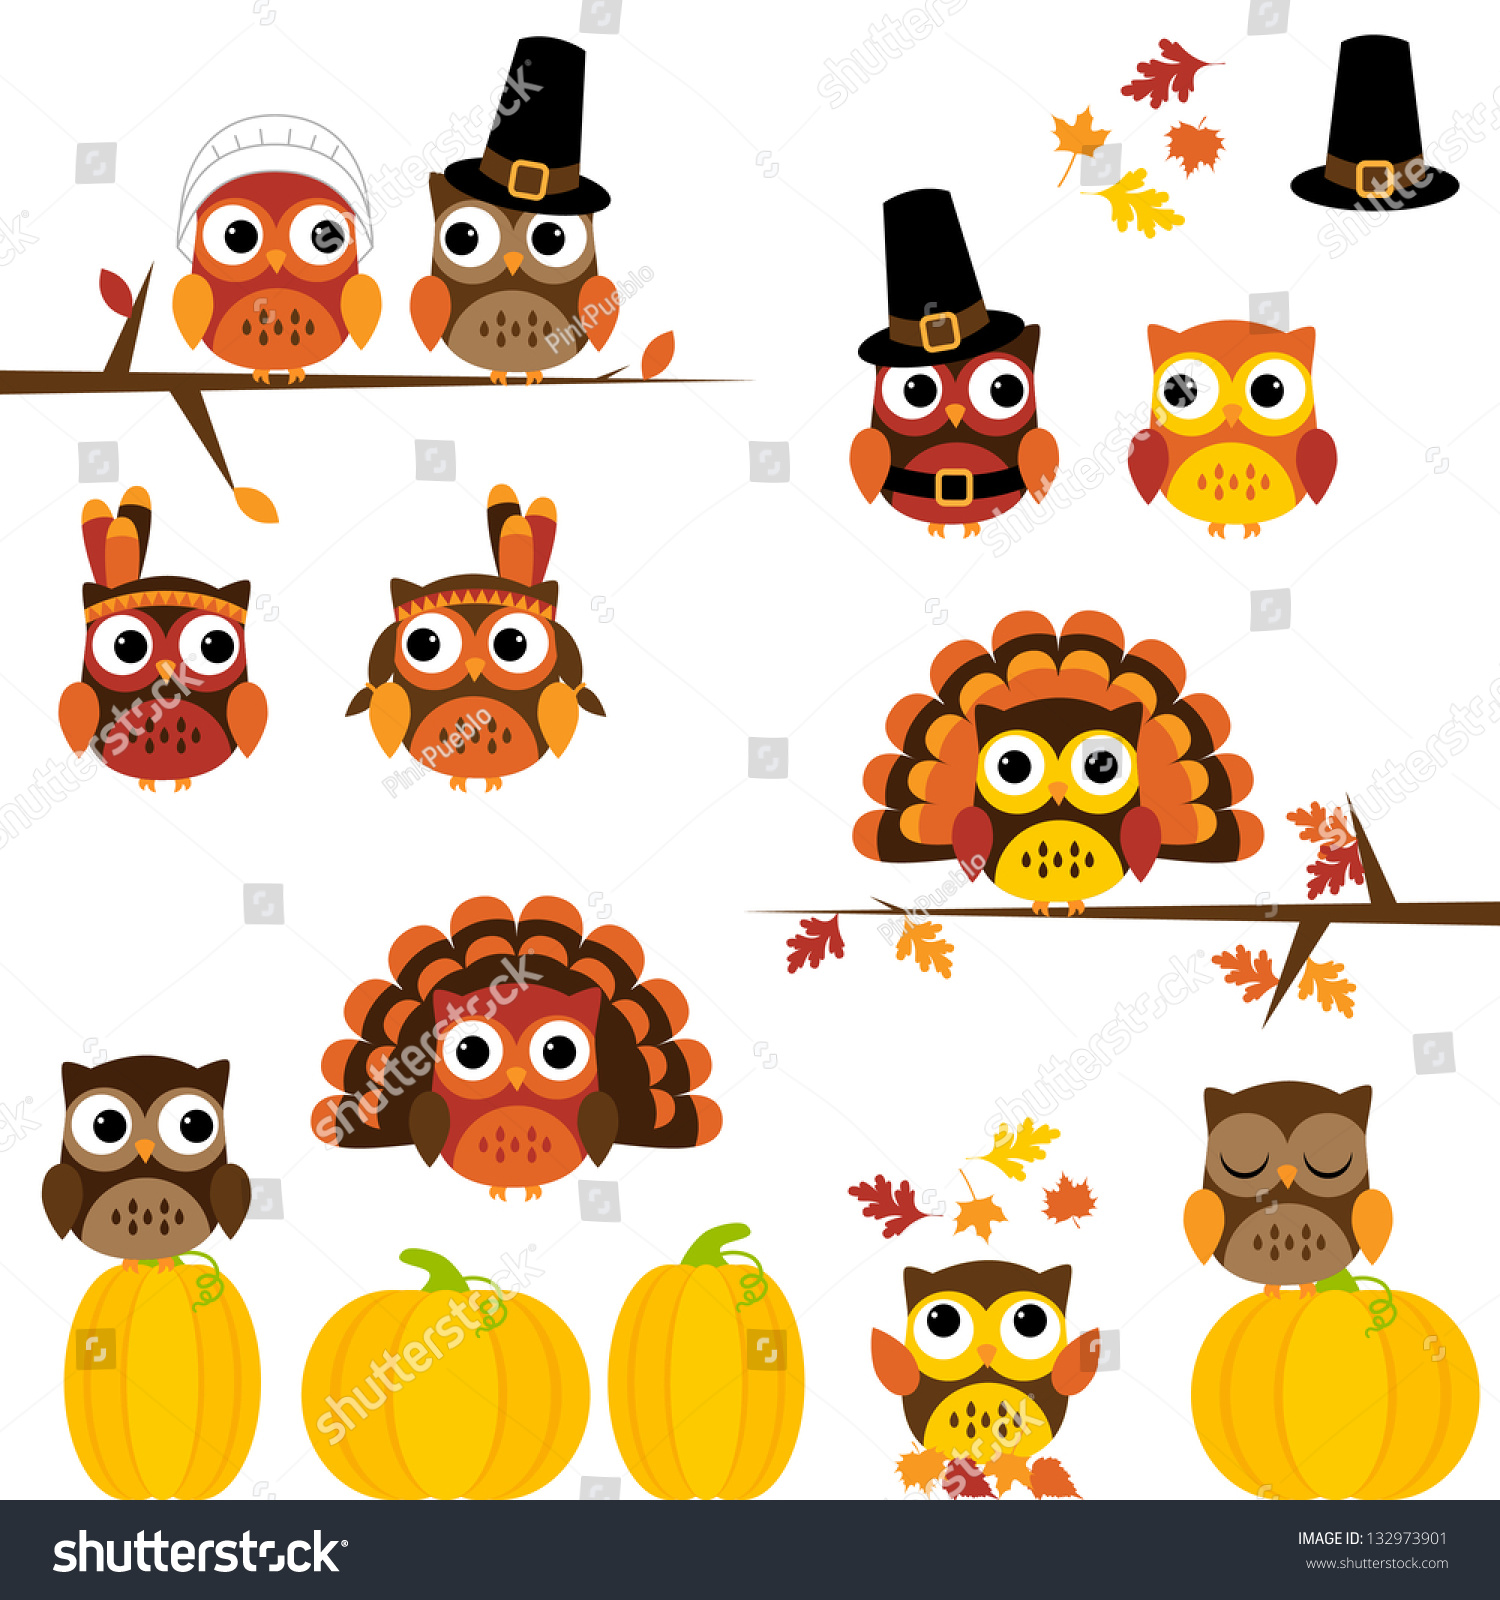 Thanksgiving Themed Pictures Stock Vector Vector Set Of Thanksgiving Themed Owls